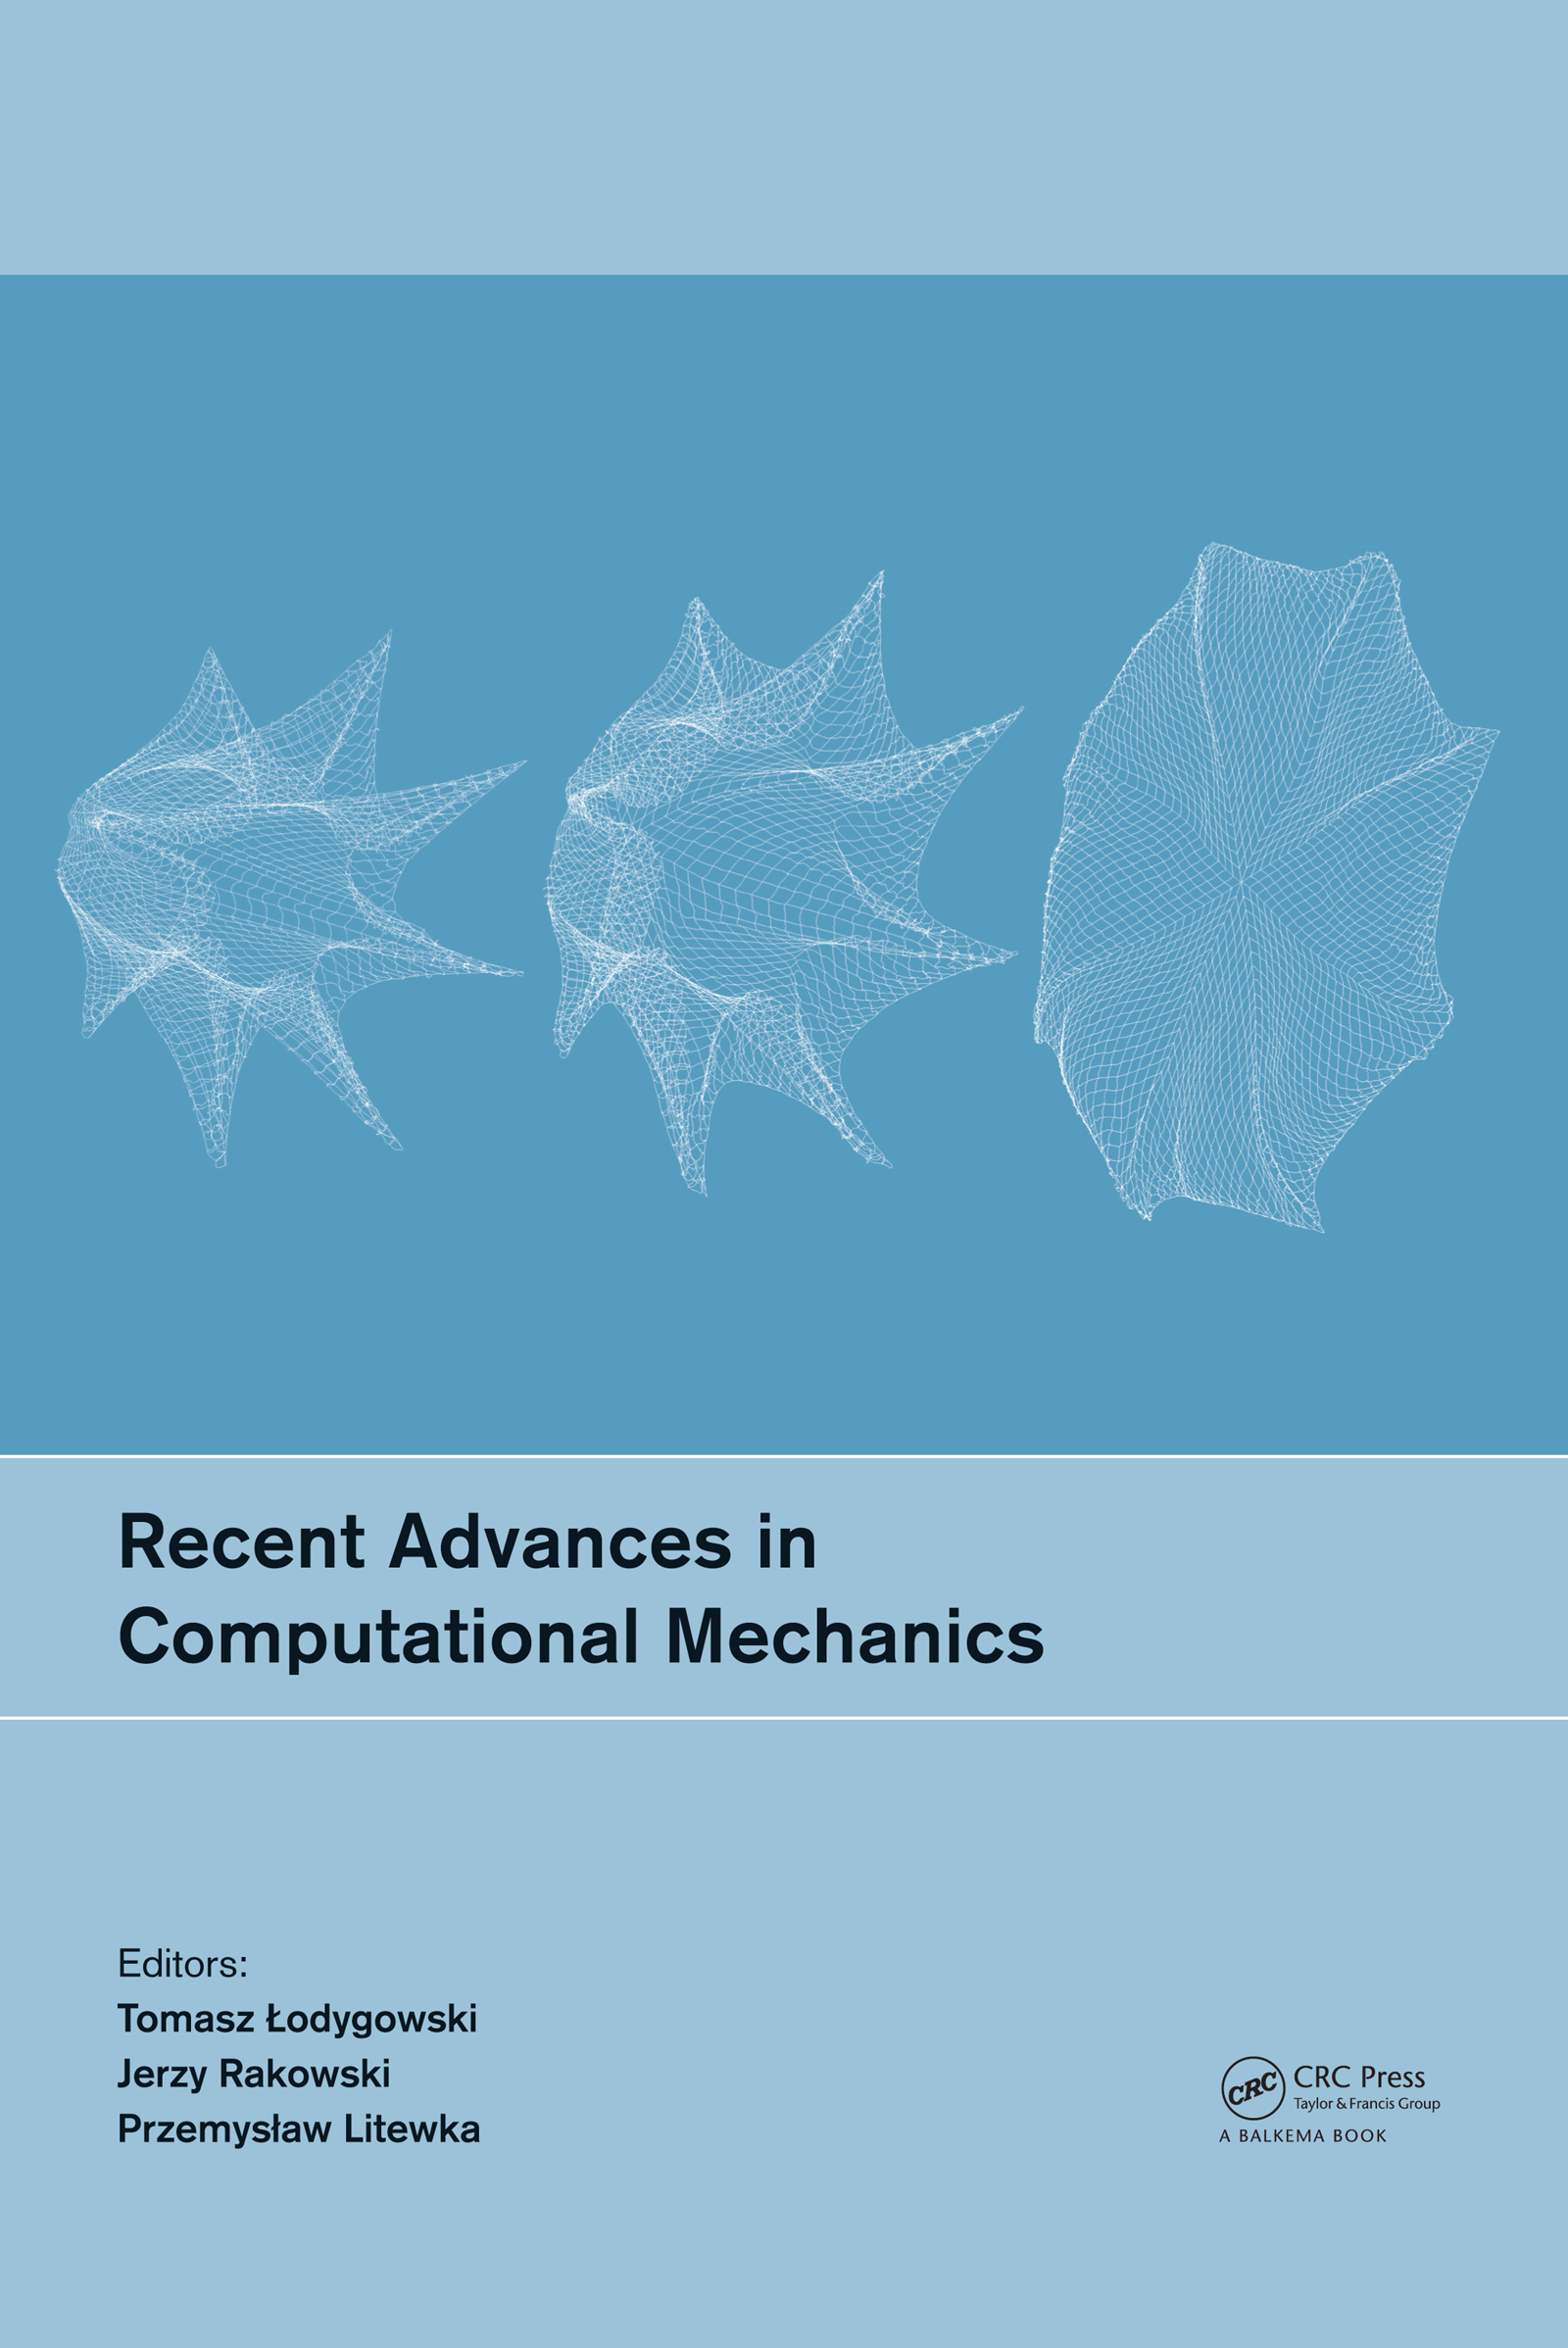 Recent Advances in Computational Mechanics: 1st Edition (Pack - Book and CD) book cover